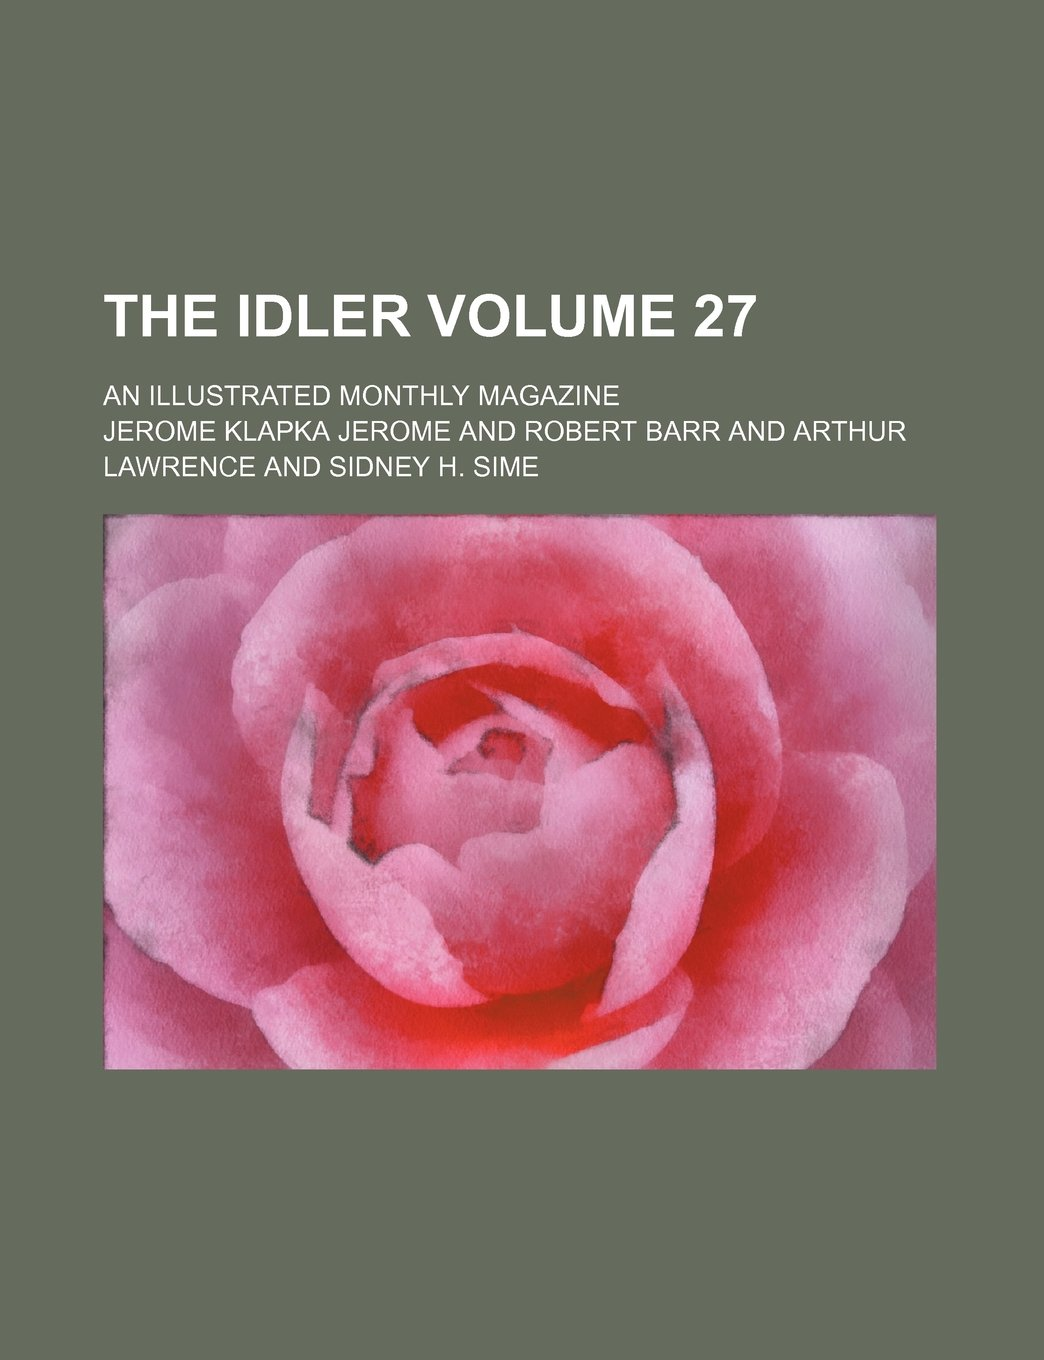 Read Online The Idler Volume 27 ; an illustrated monthly magazine ebook